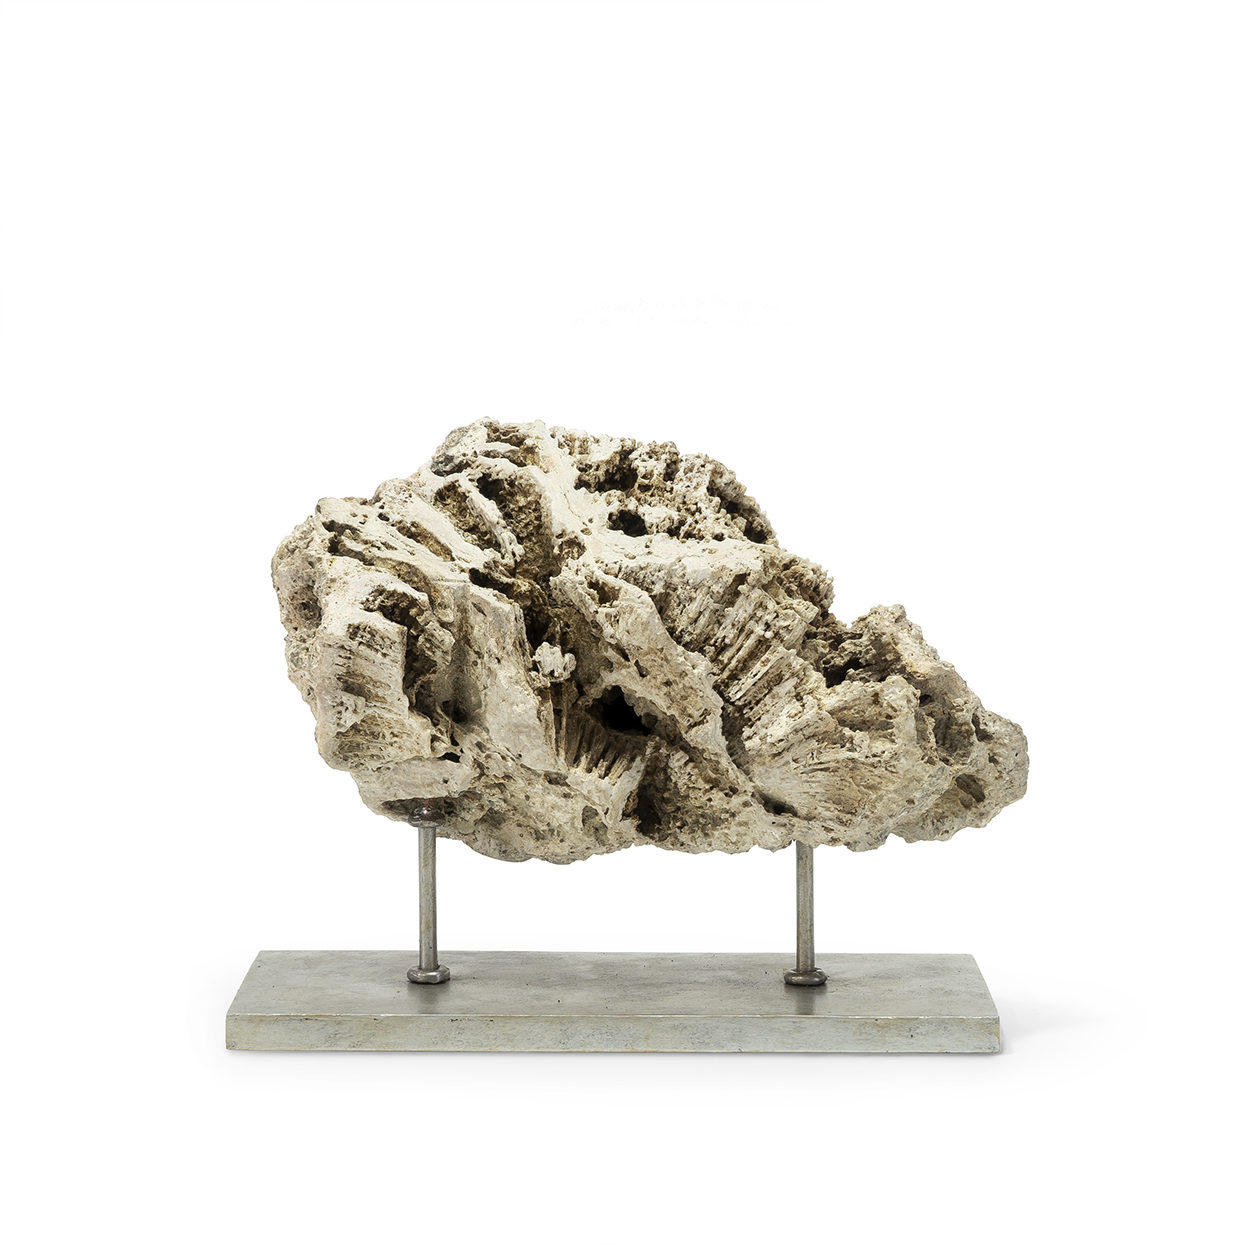 Fossilized Coral-$375.00